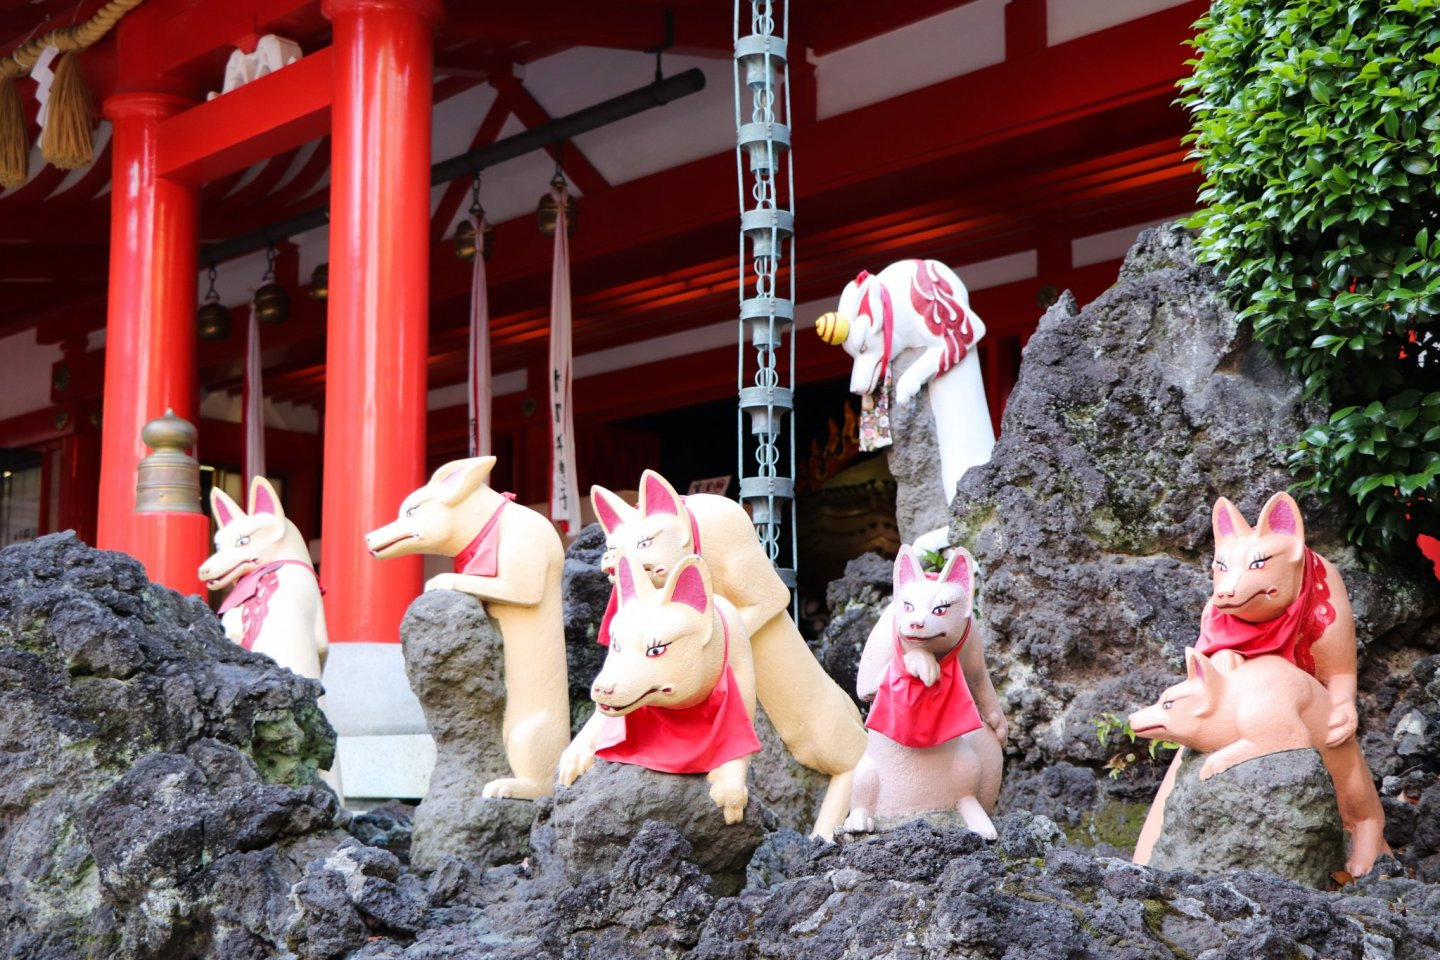 108 foxes inhabit the shrine, each having its own pose